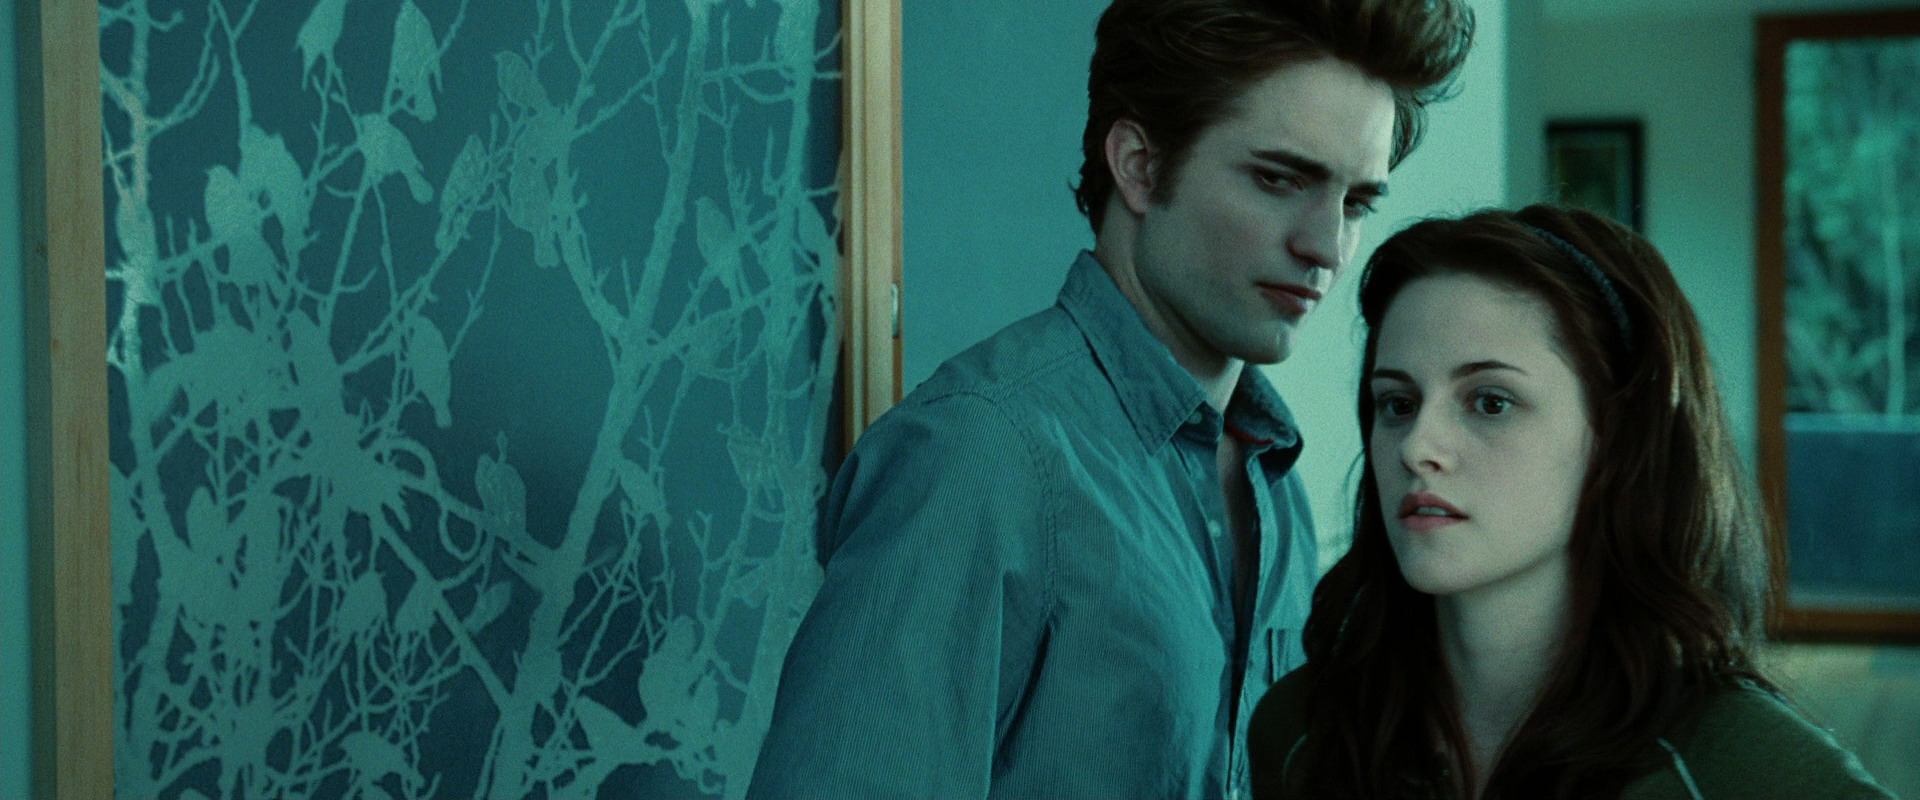 Watch Full movie Twilight 2008 Online Free  Fantasy